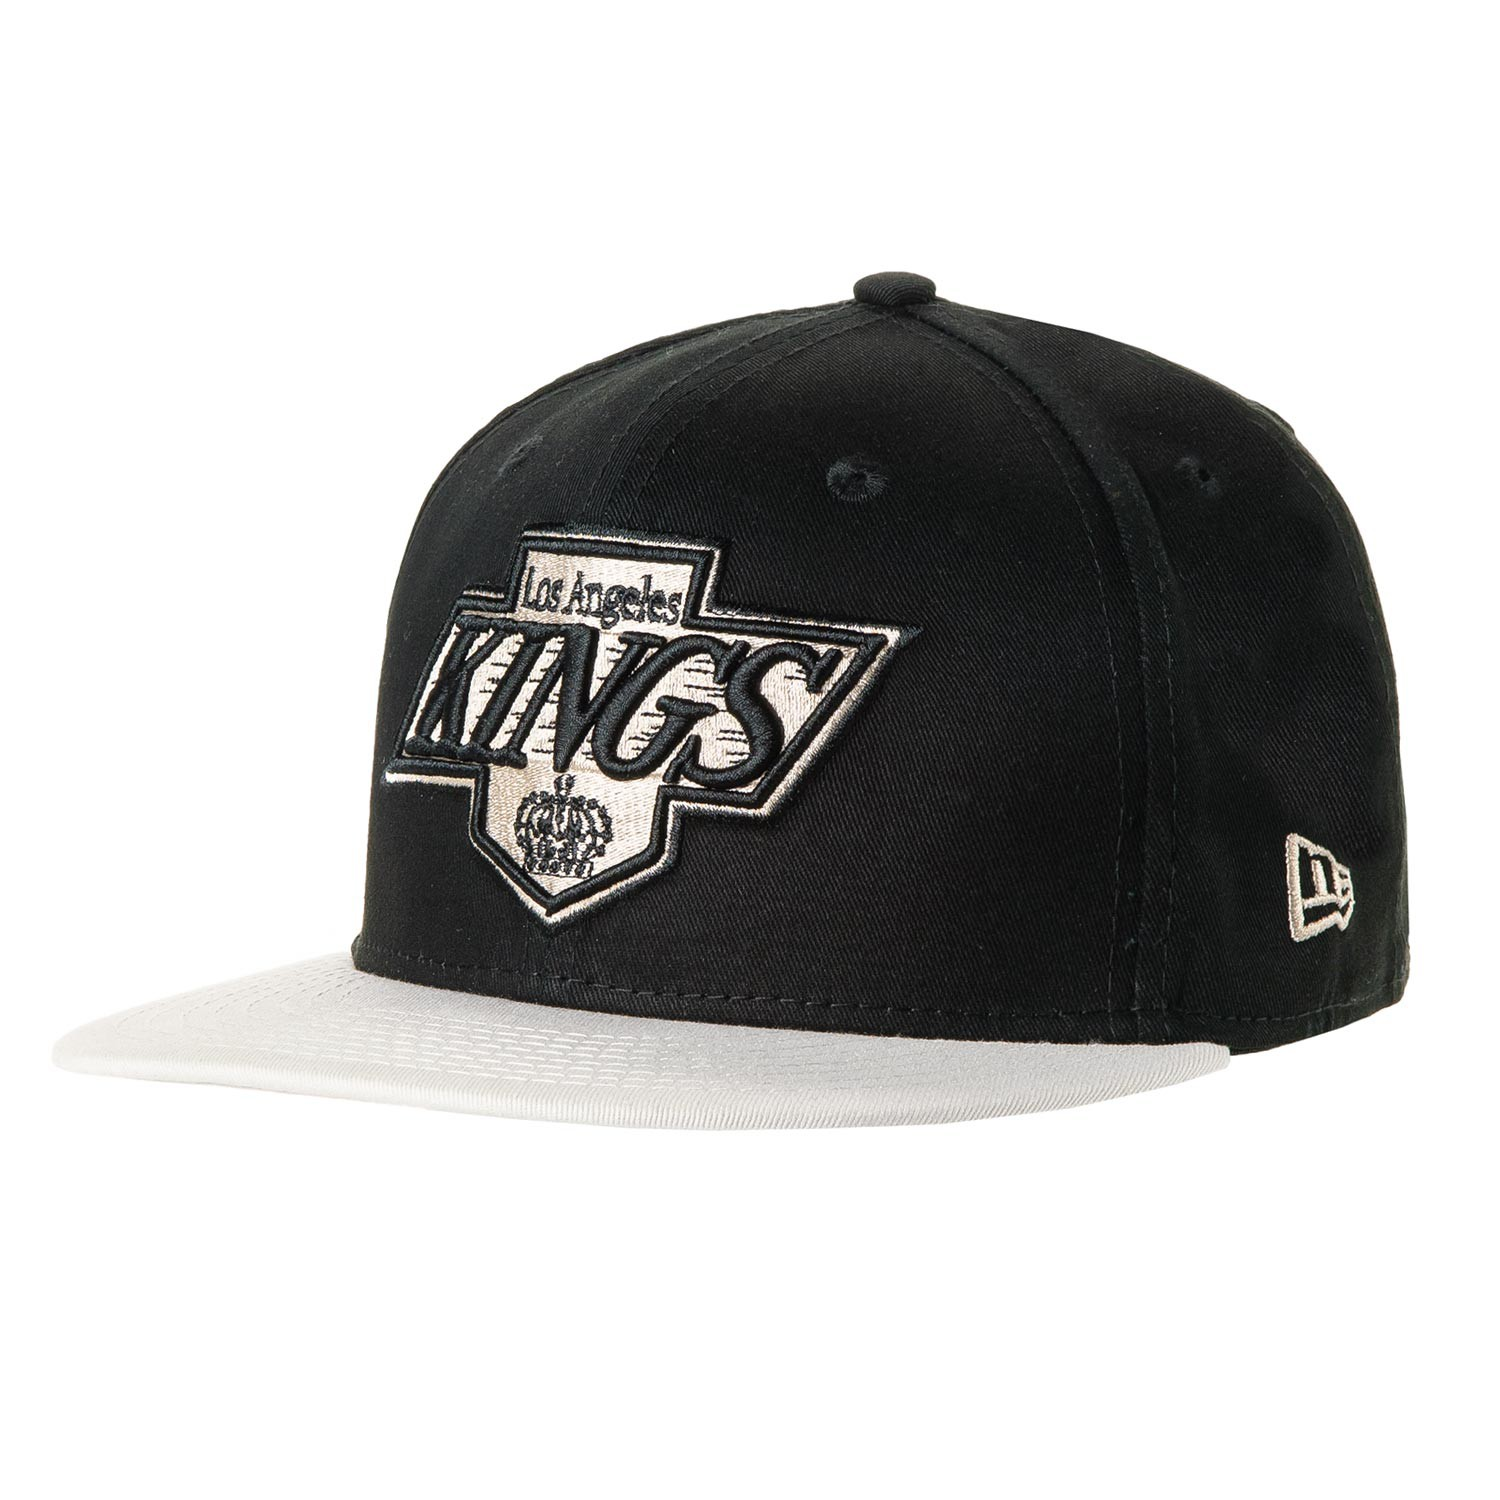 Kšiltovka New Era Los Angeles Kings 9Fifty Contrast black/stn